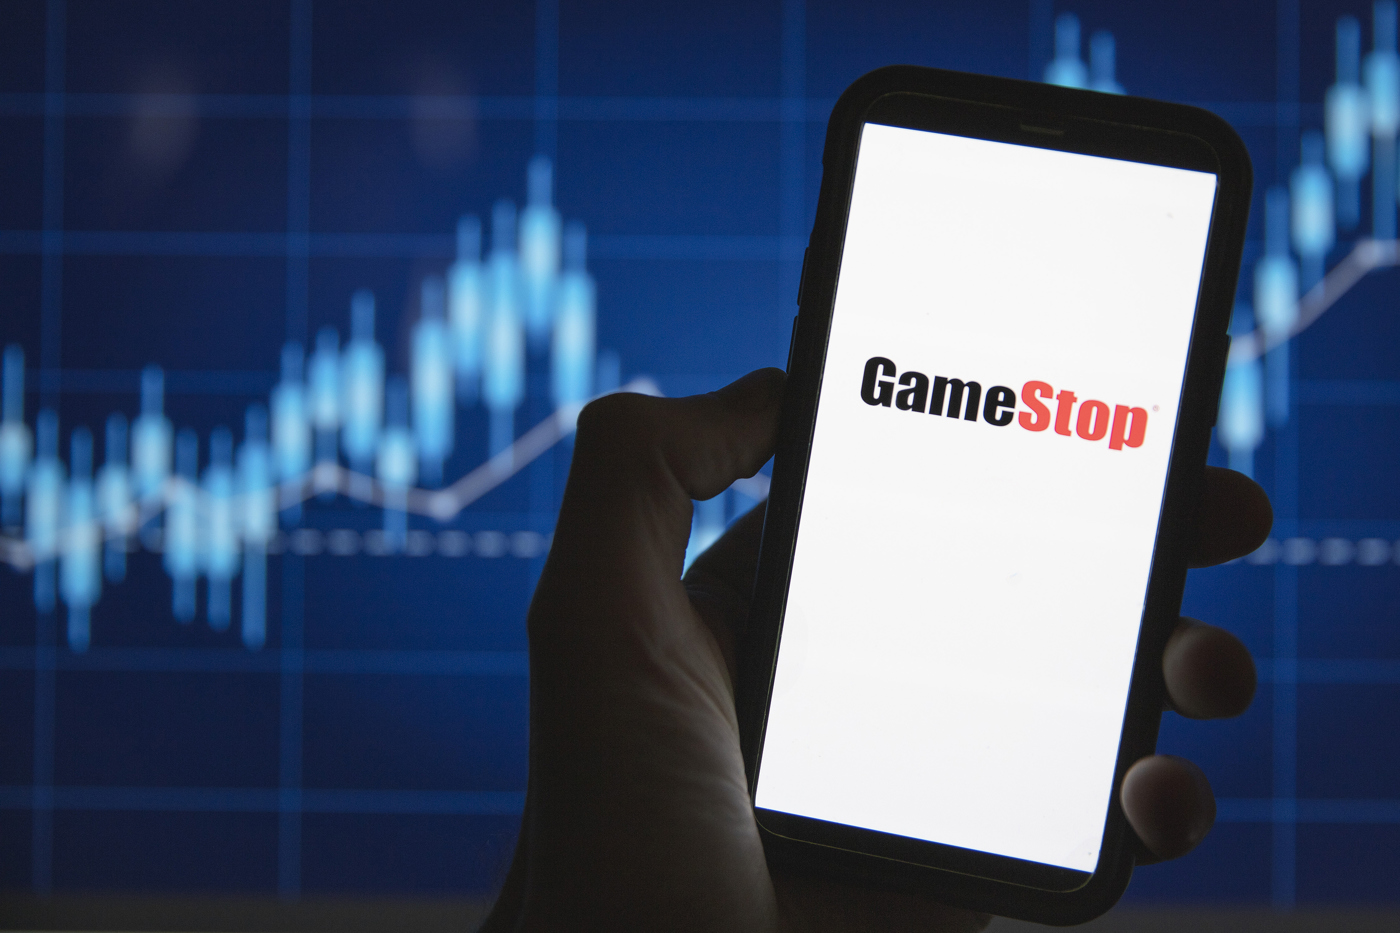 Gamestop stock, GME stock, Meme stocks, WallStreetBets